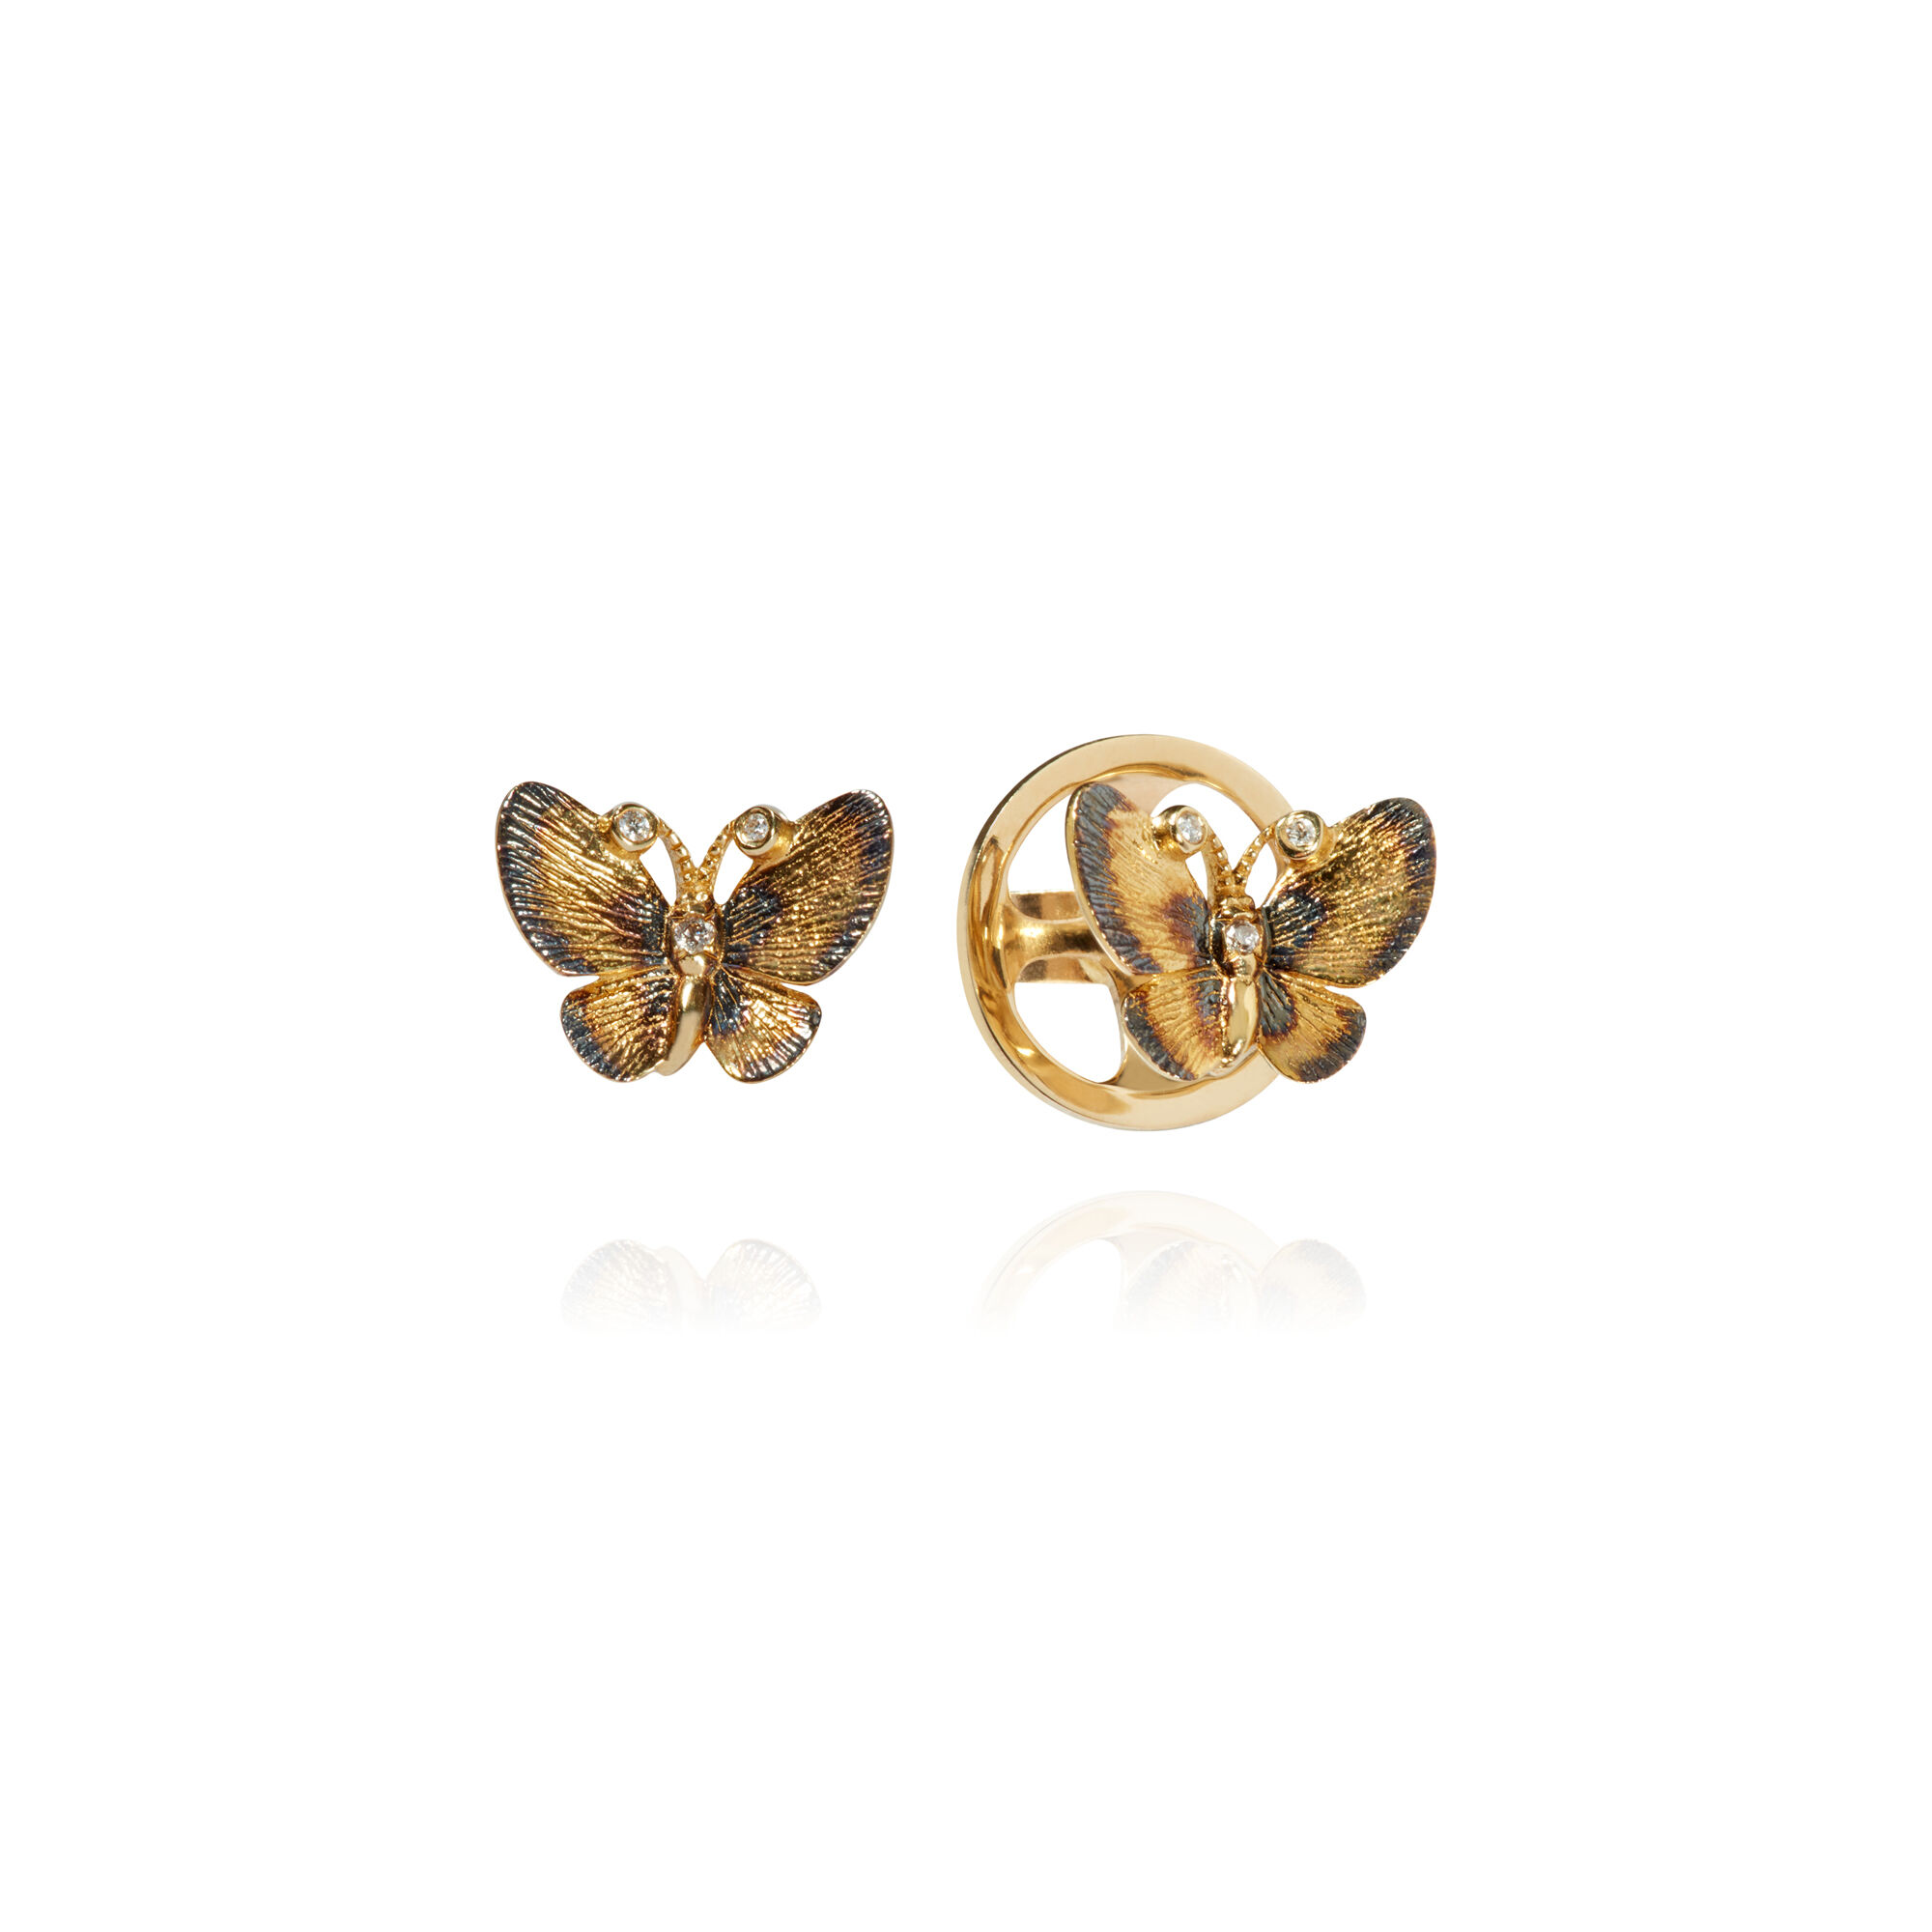 e543e51d3 Butterflies 18ct Gold Diamond Stud Earrings. Click to expand